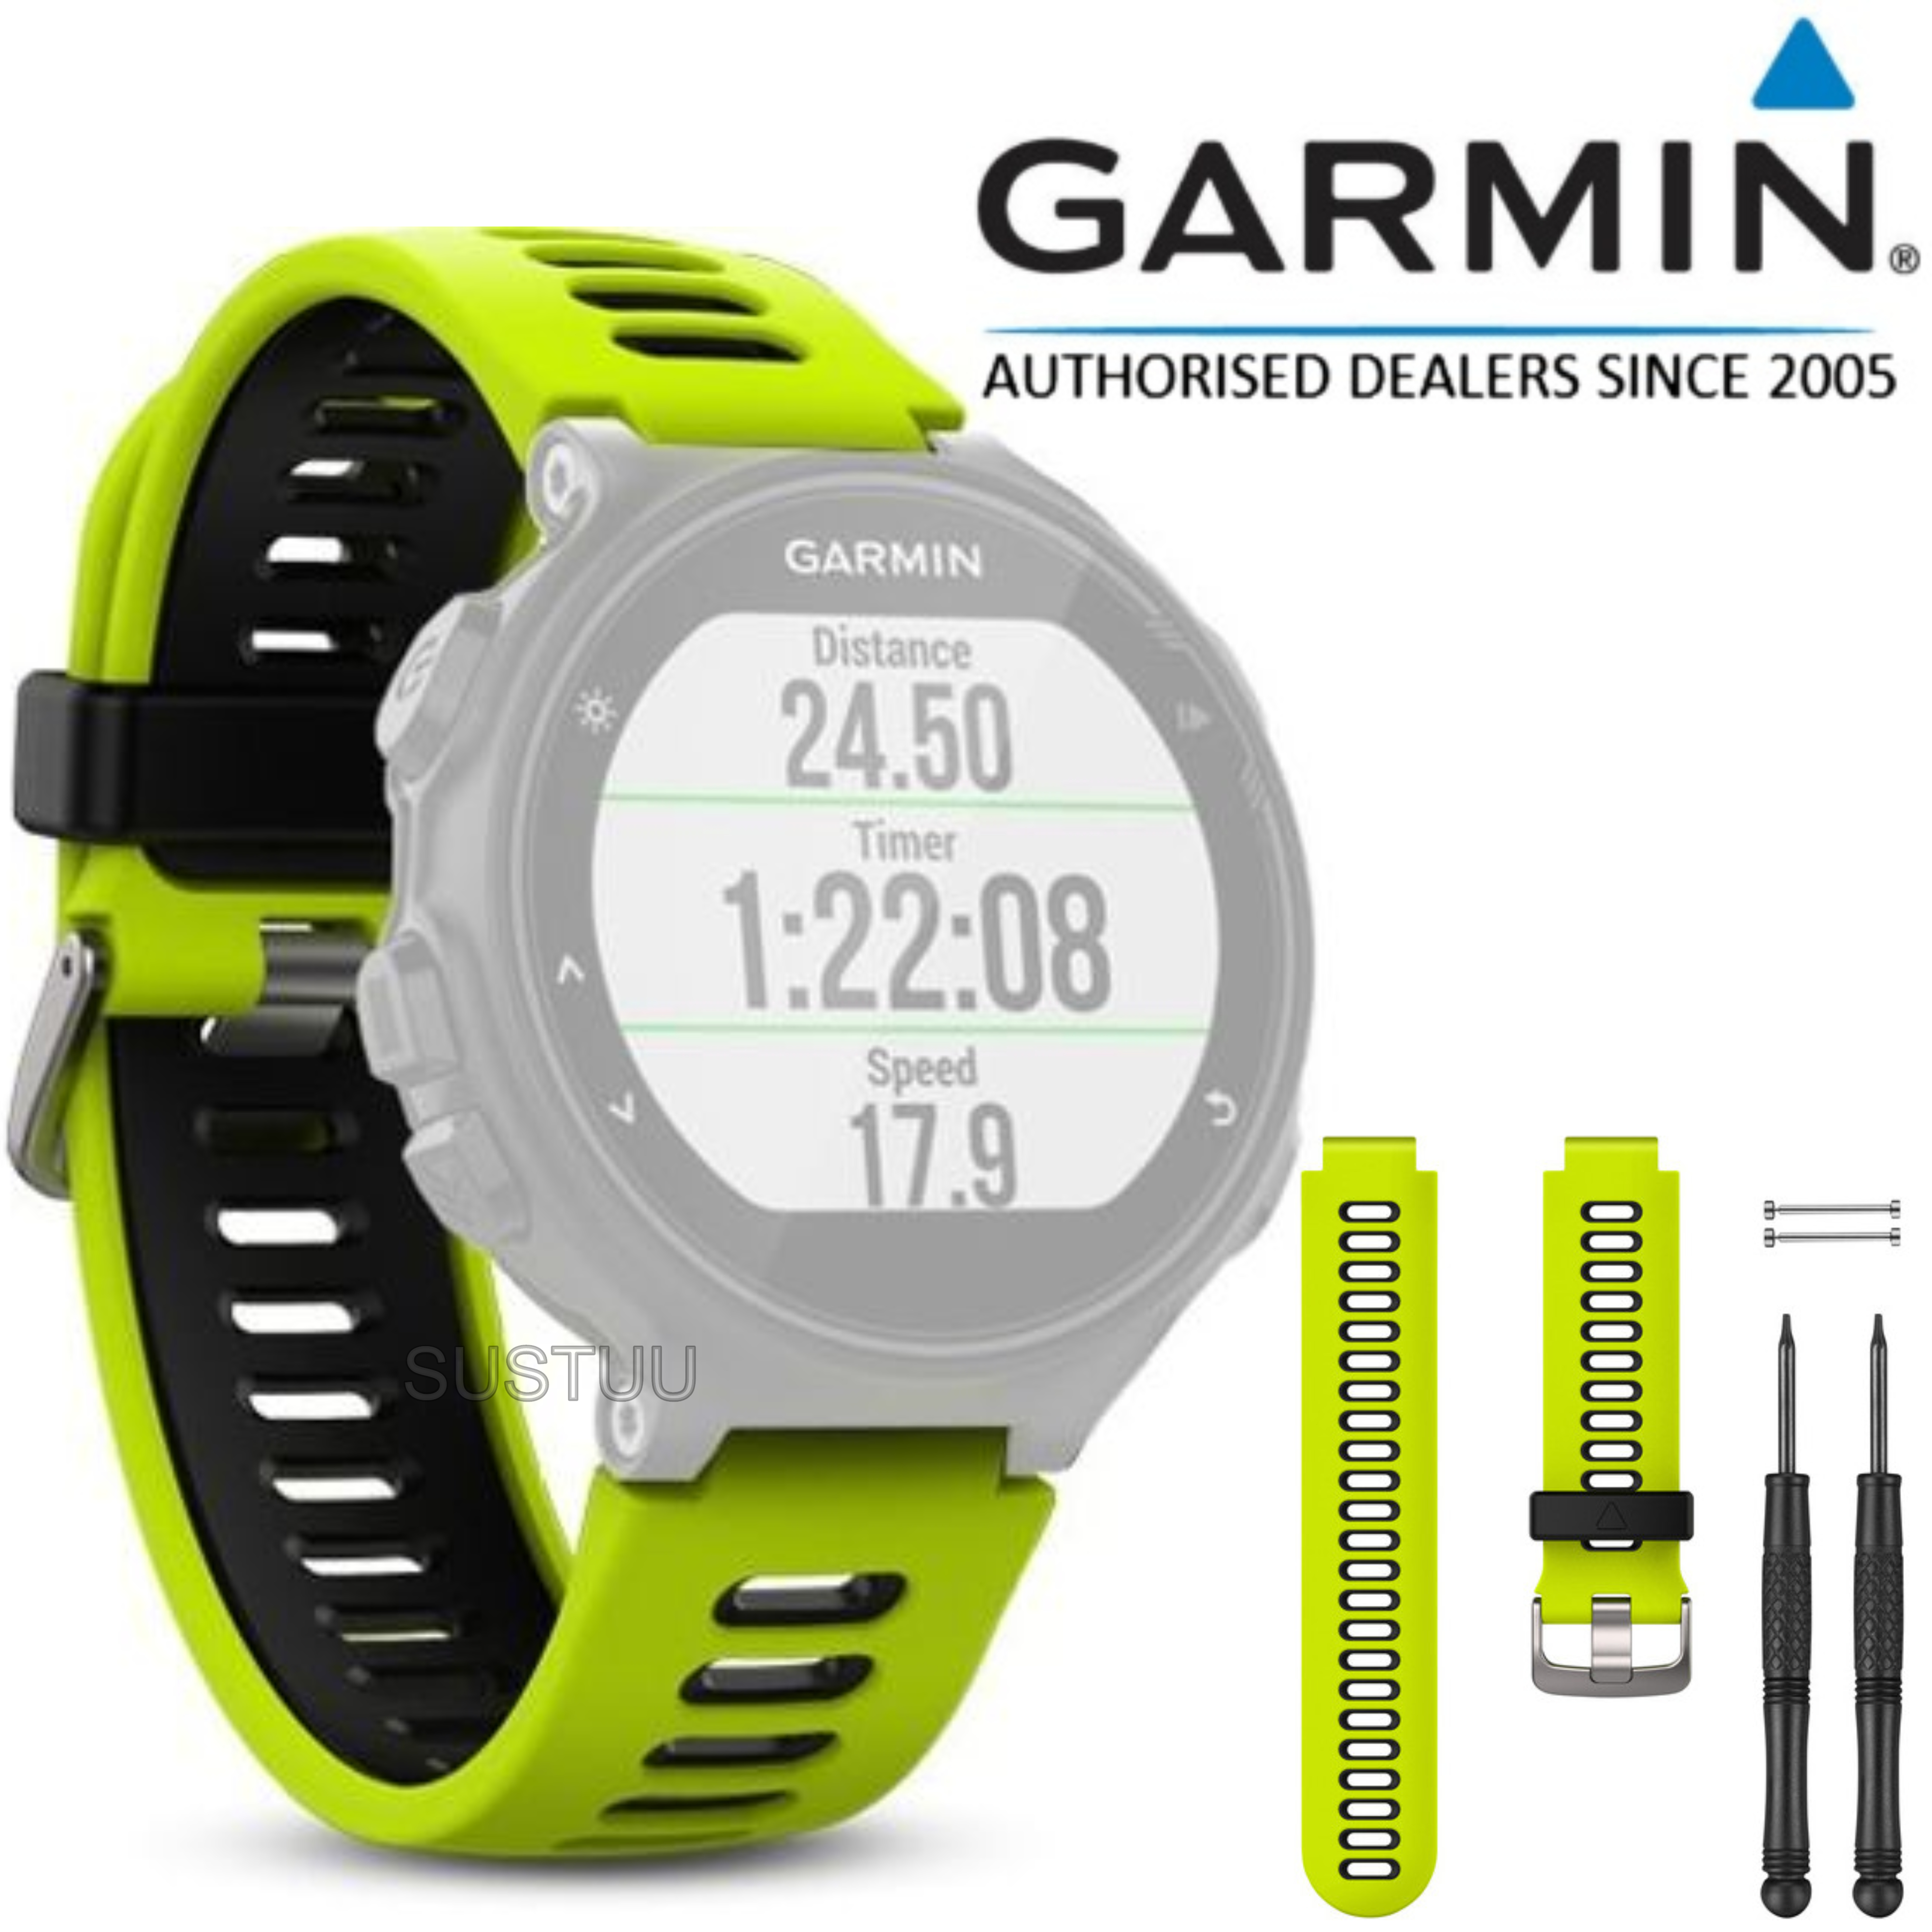 Garmin Replacement Watch Strap Band   For Forerunner 230 235 630 735XT   Force Yellow / Black